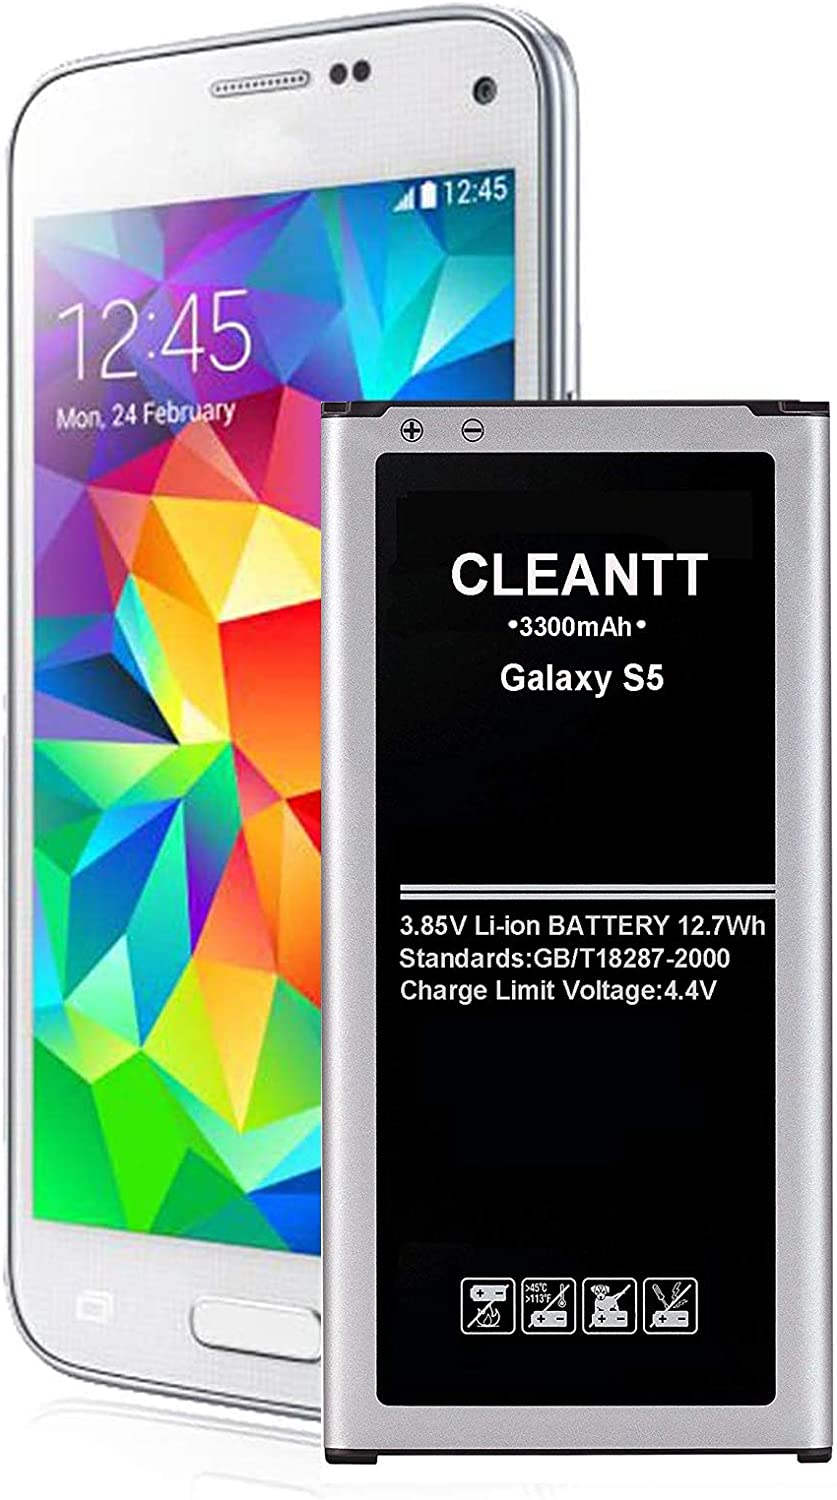 Galaxy S5 Battery, Cleantt 3300mAh Li-ion Replacement Battery for Samsung Galaxy S5 [ I9600, G900F, G900V (Verizon), G900T (T-Mobile), G900A (AT&T),G900P(Sprint)]